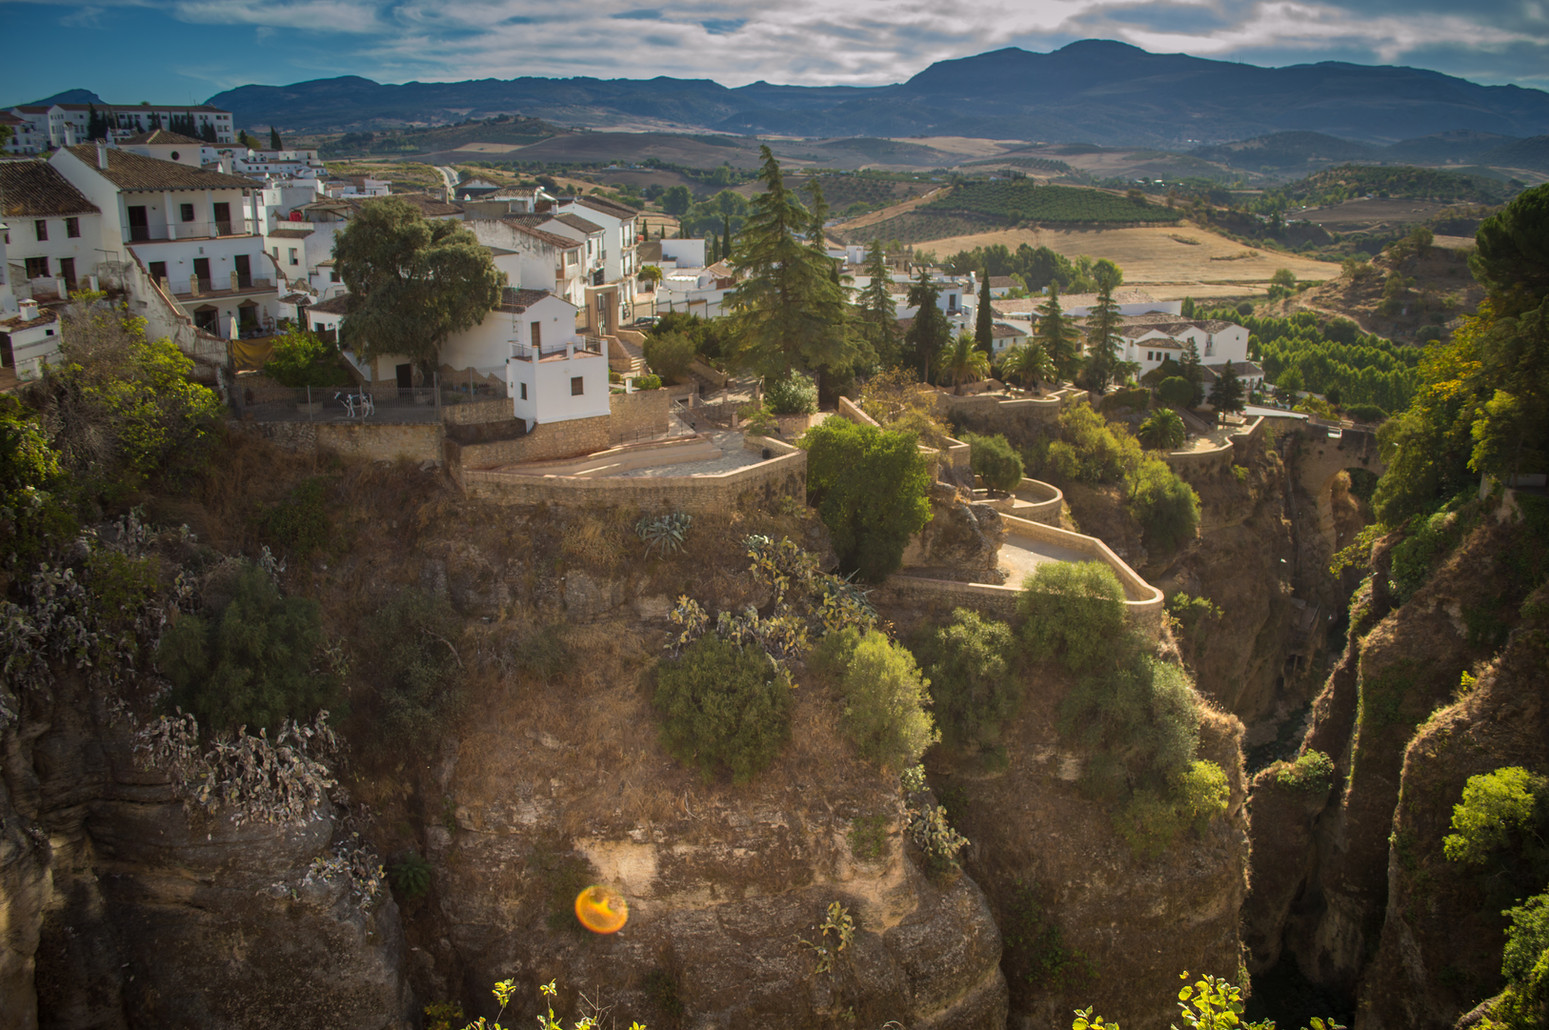 The canyon in Ronda.